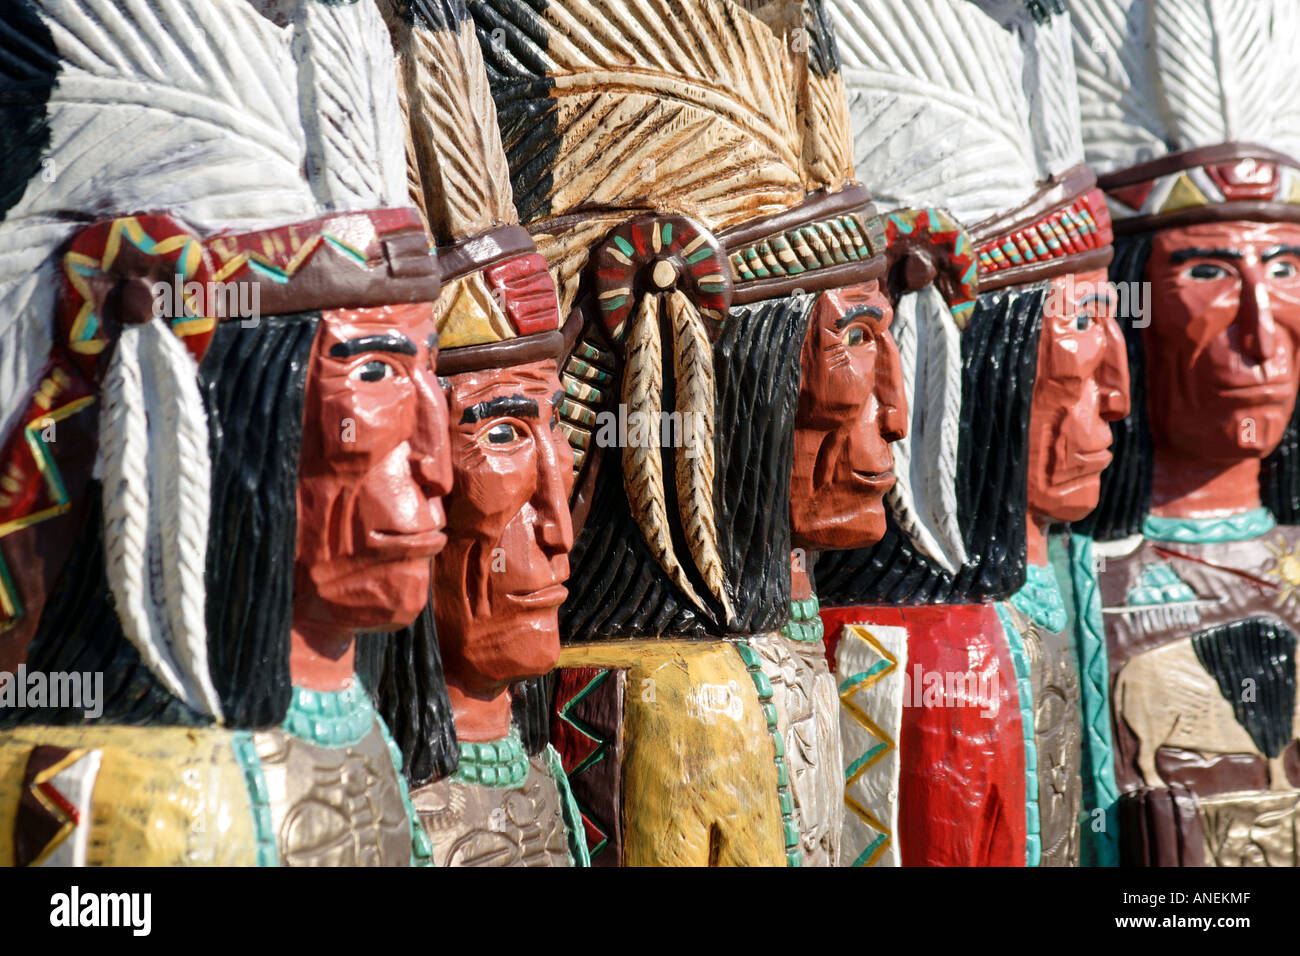 Statues of Native American Indians Carved from Wood and Painted, Jackson Hole, Wyoming - Stock Image